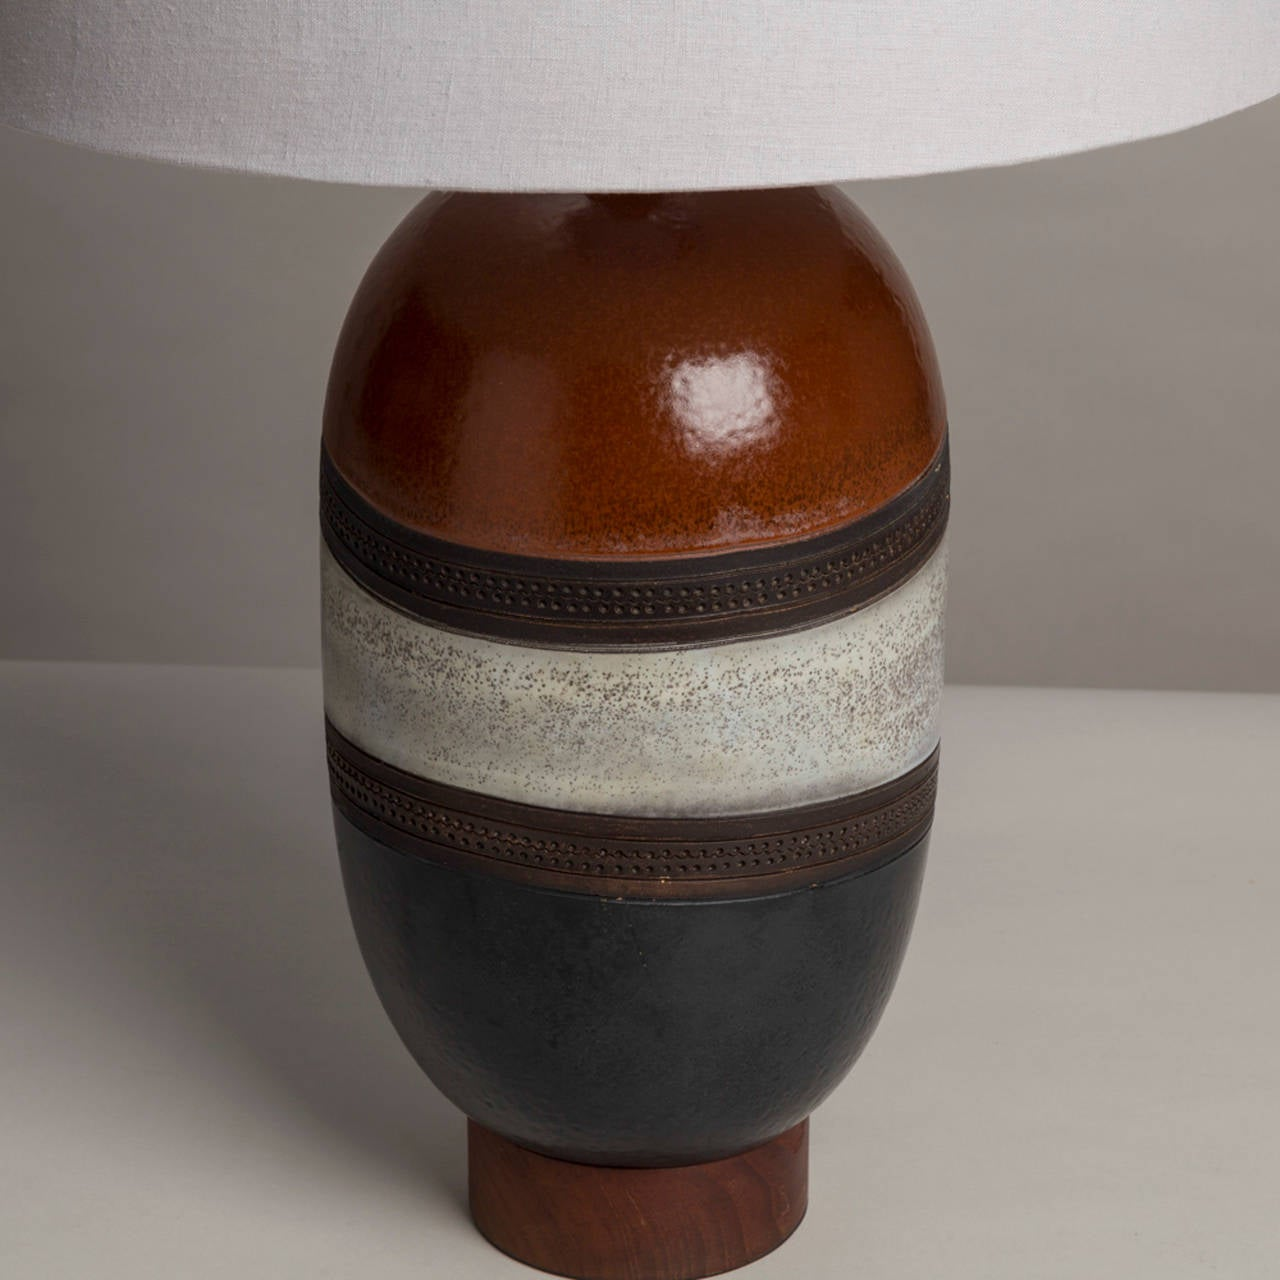 Single Italian Glazed Ceramic Table Lamp, 1970s In Excellent Condition For Sale In London, GB